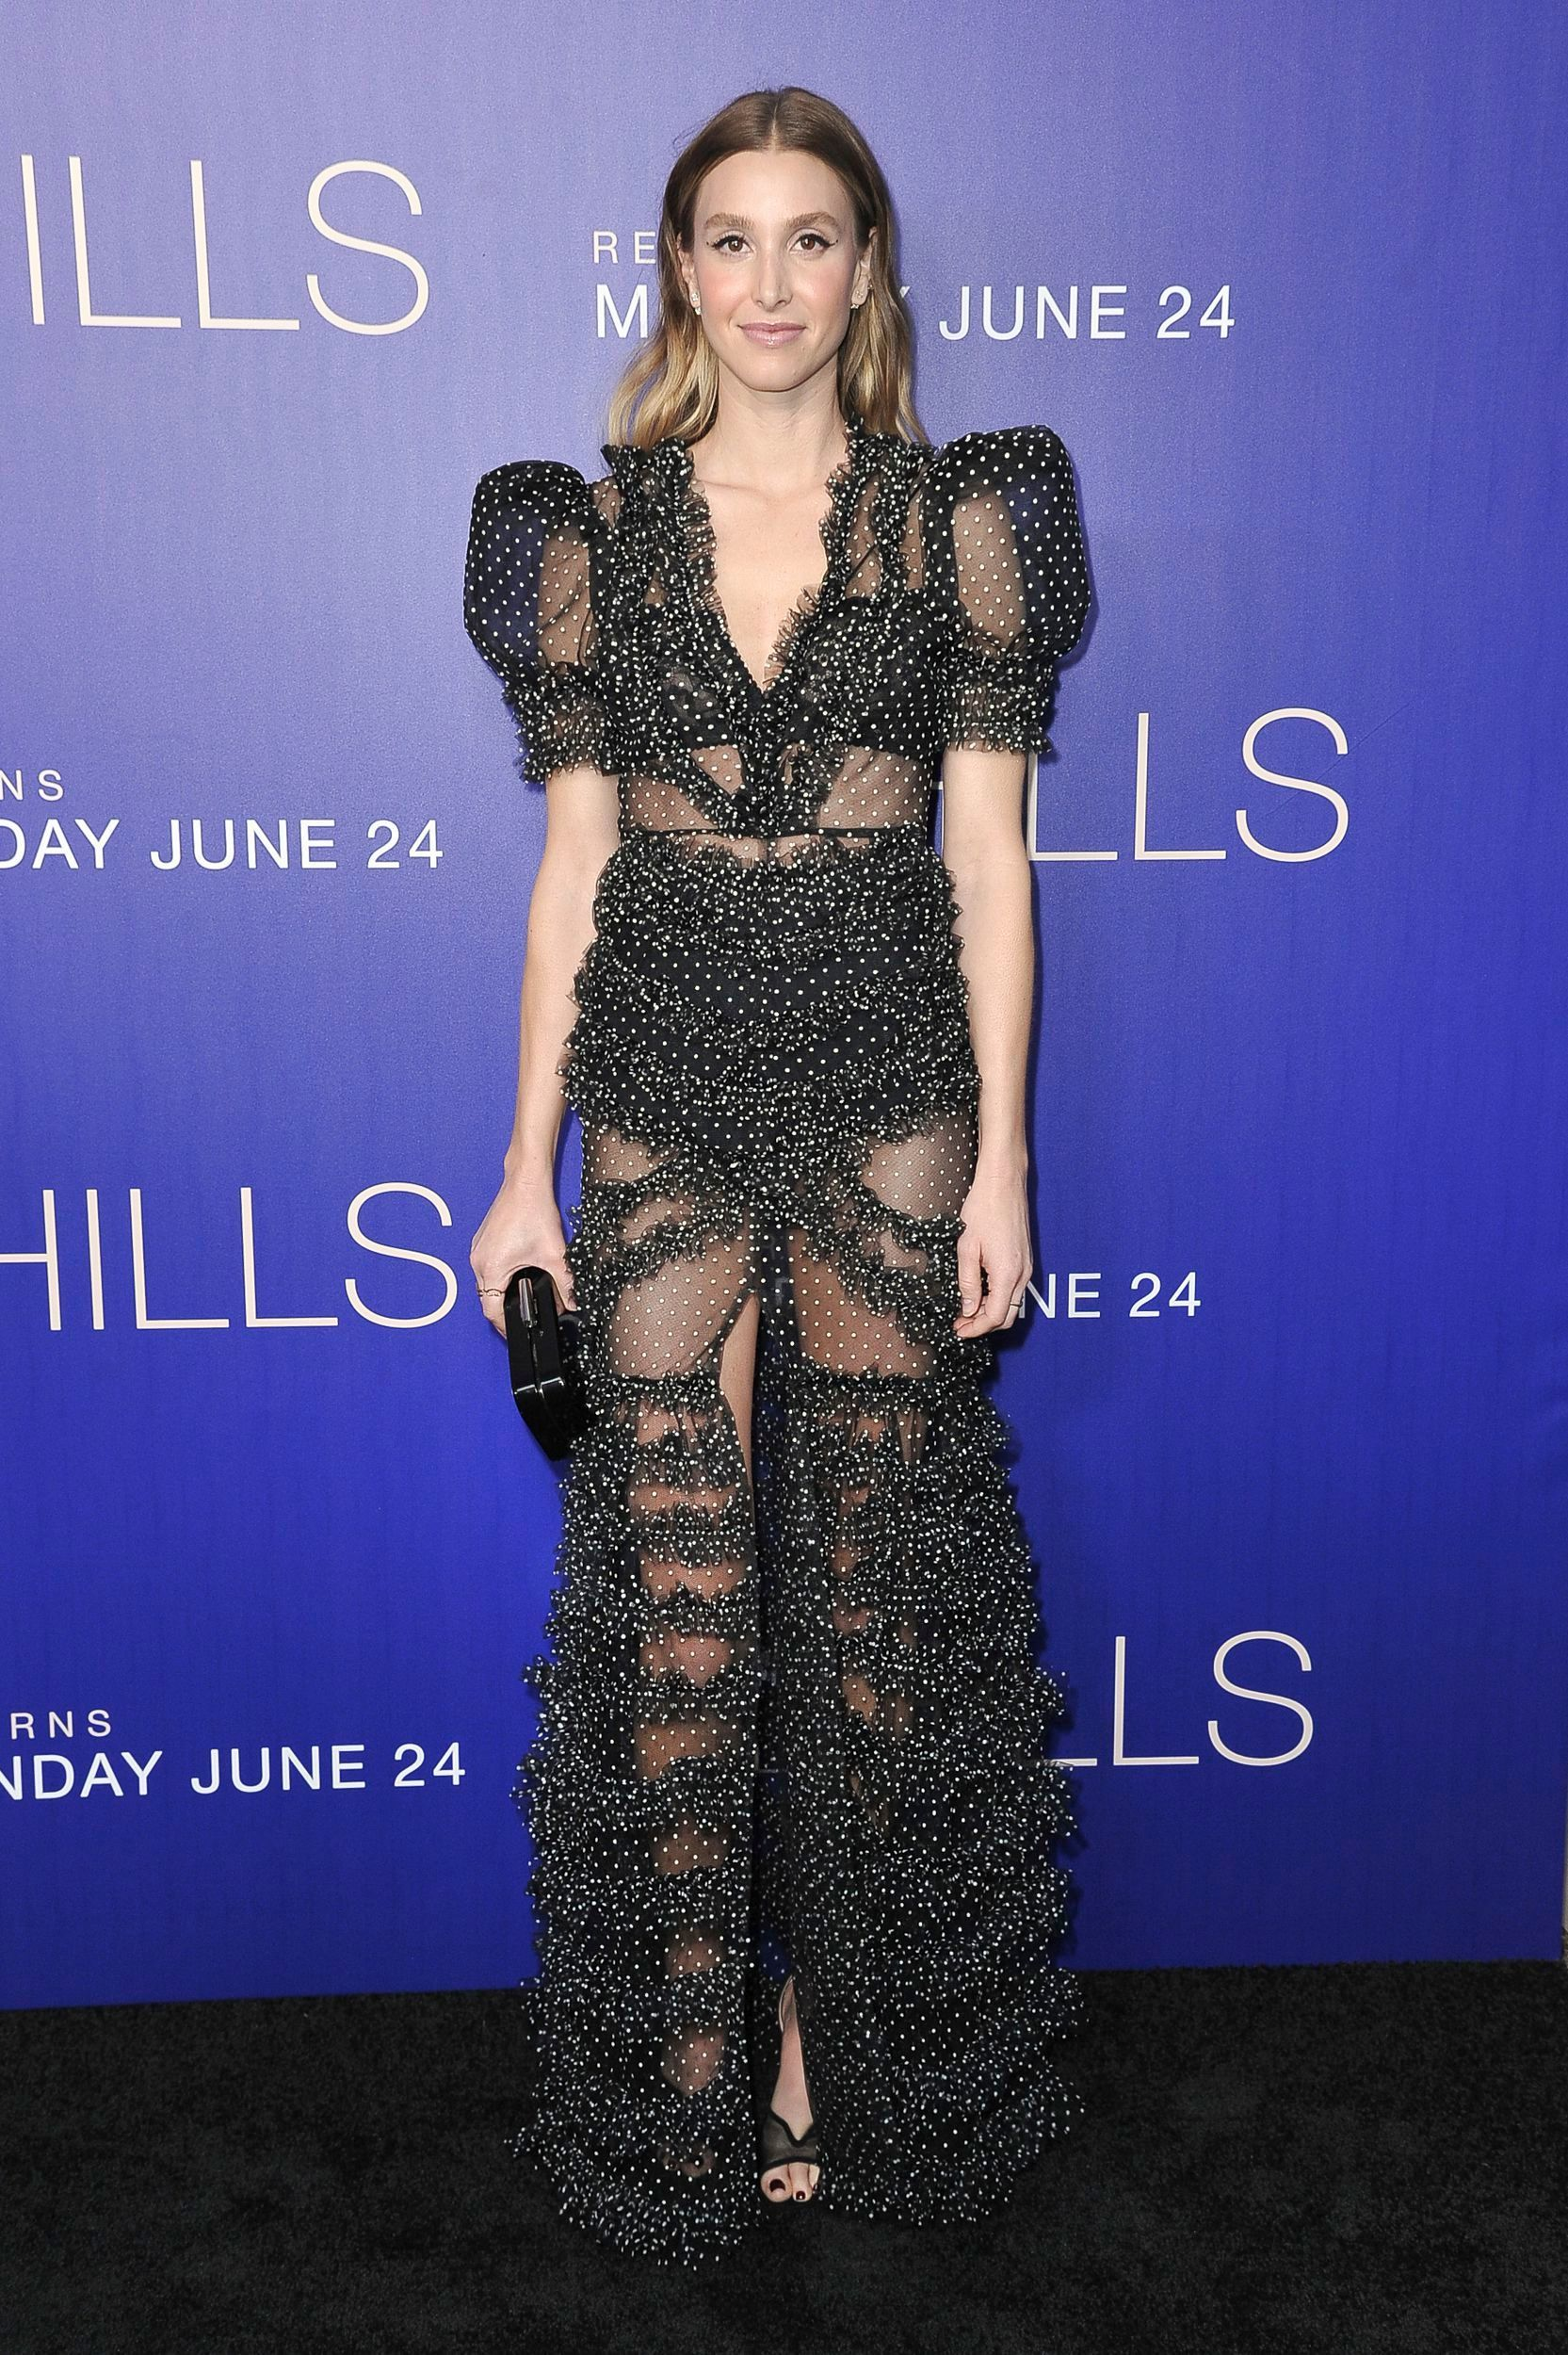 """Whitney Port arrives at MTV's """"The Hills: New Beginnings"""" TV show premiere and party at Liaison Restaurant and Lounge in Los Angeles on June 19, 2019."""